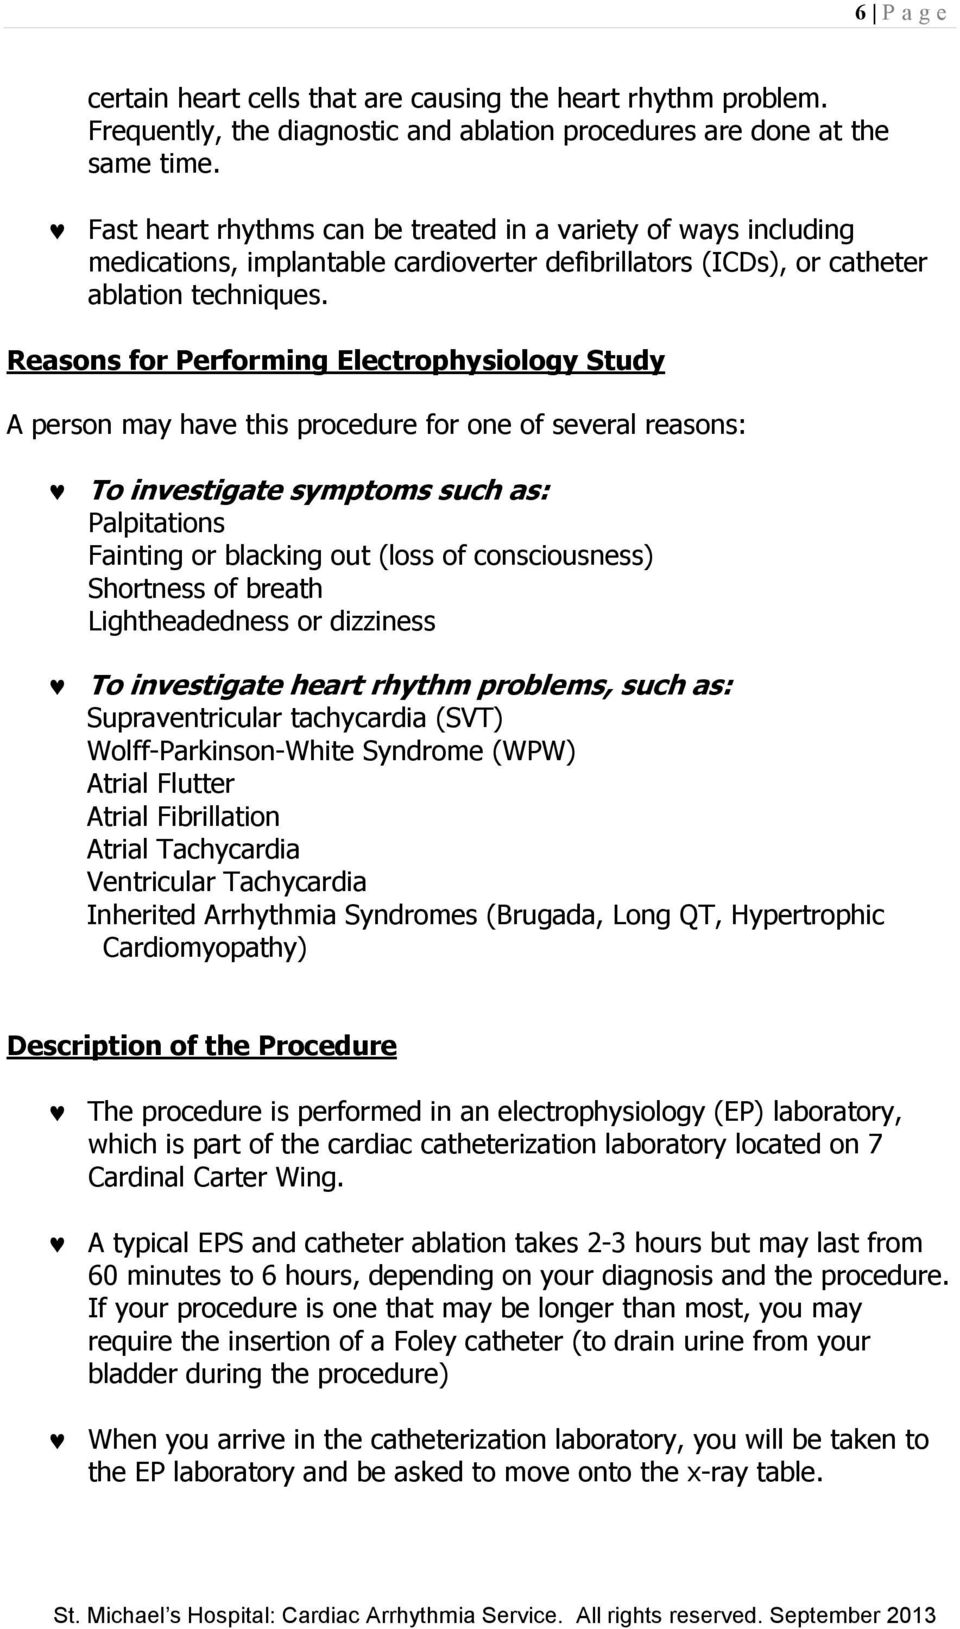 Reasons for Performing Electrophysiology Study A person may have this procedure for one of several reasons: To investigate symptoms such as: Palpitations Fainting or blacking out (loss of